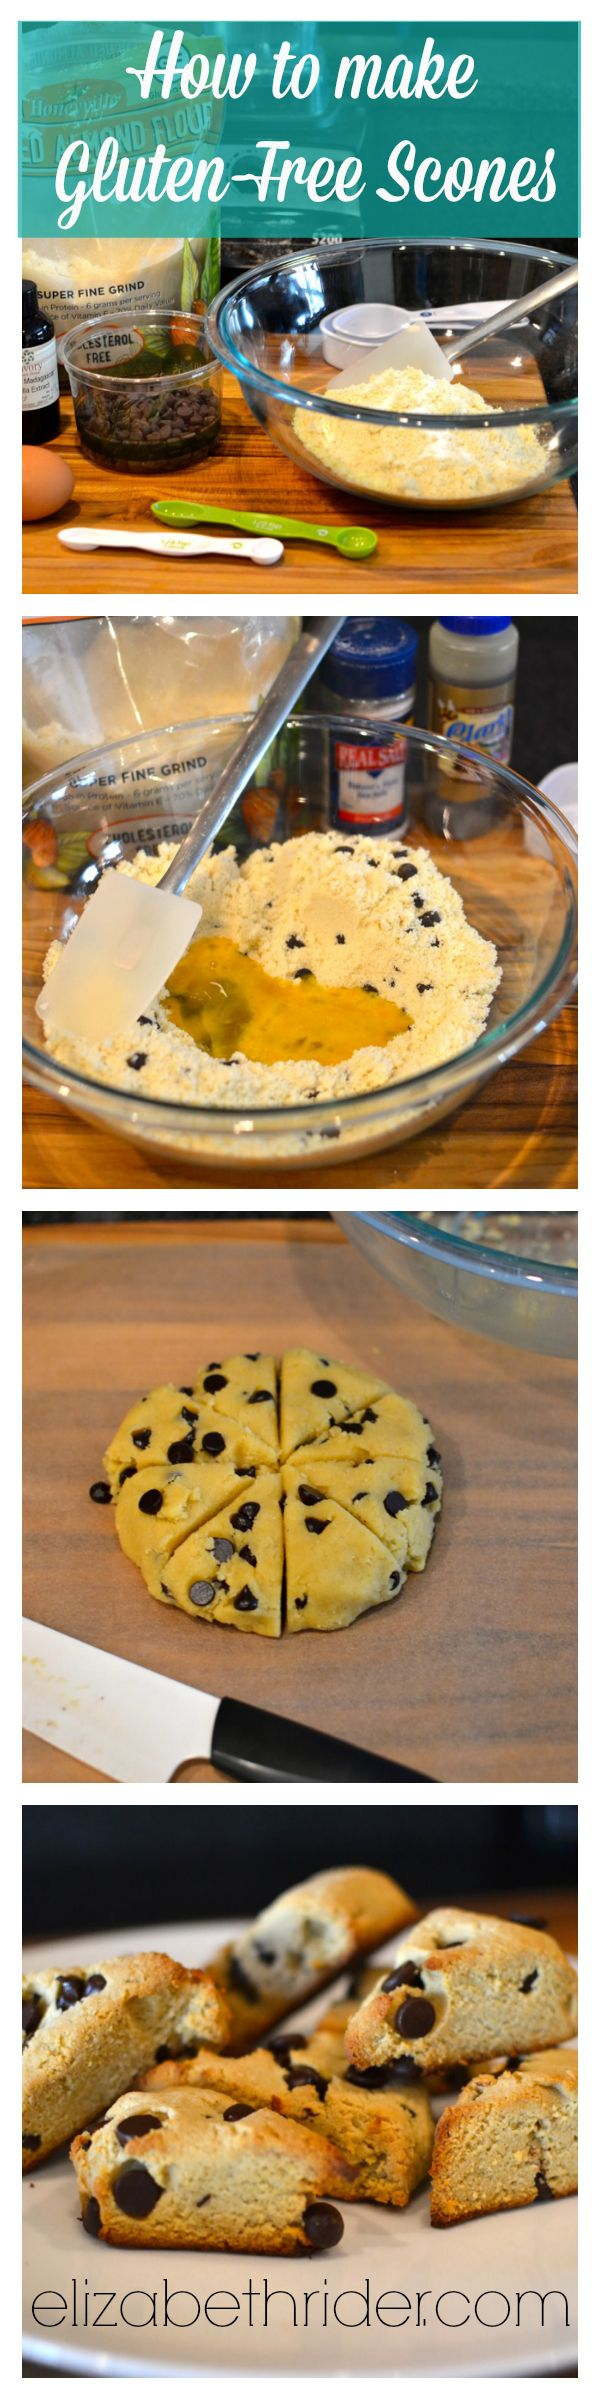 How to Make Gluten-Free Scones (with recipe): Step-by-Step instructions on www.elizabethrider.com